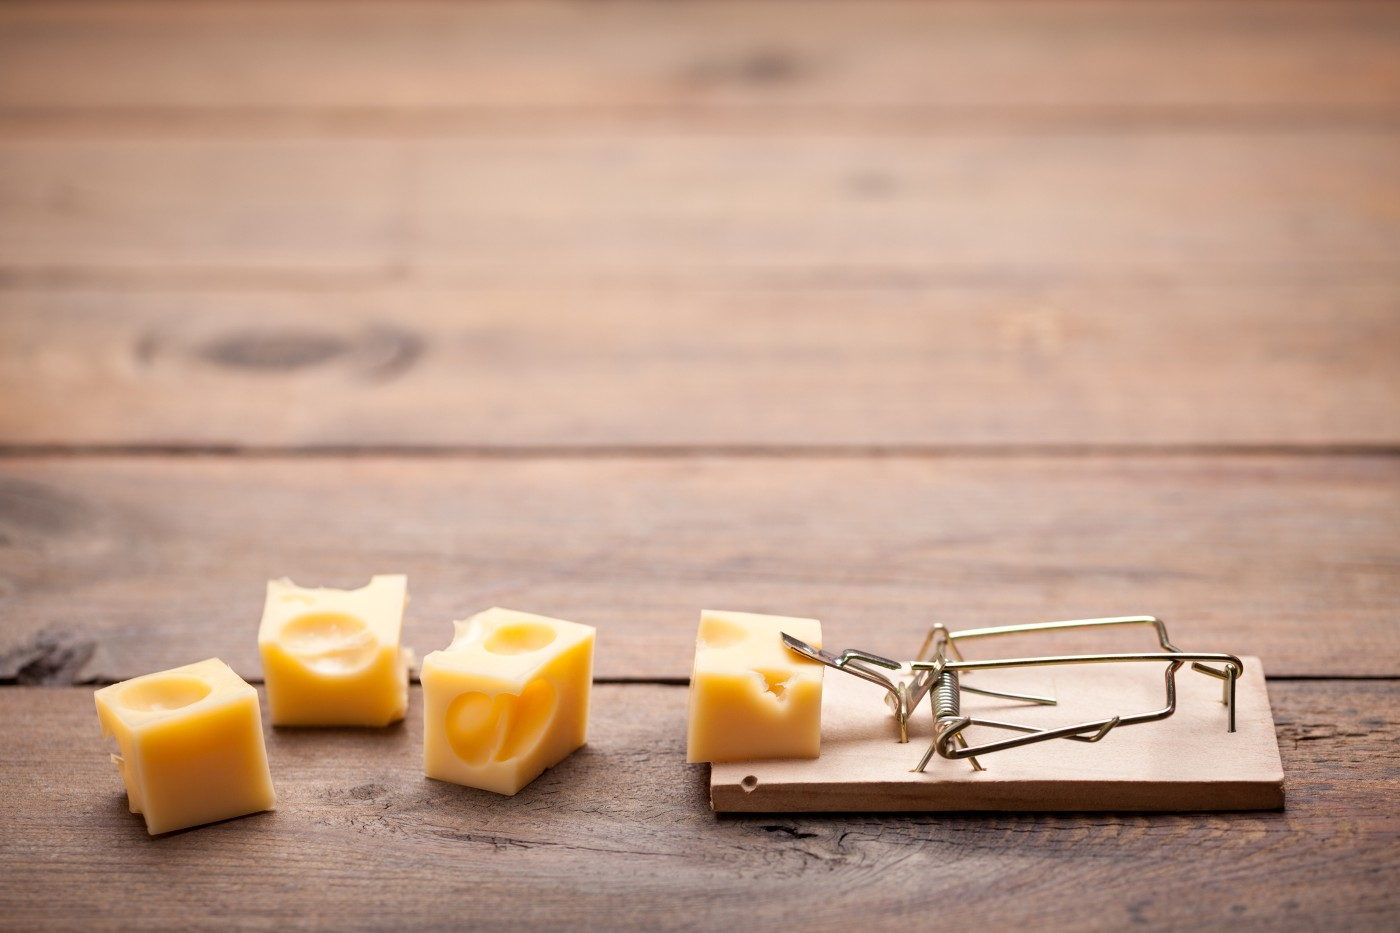 https://tickertapecdn.tdameritrade.com/assets/images/pages/md/Mousetrap with cheese: Risk vs. reward in investment returns